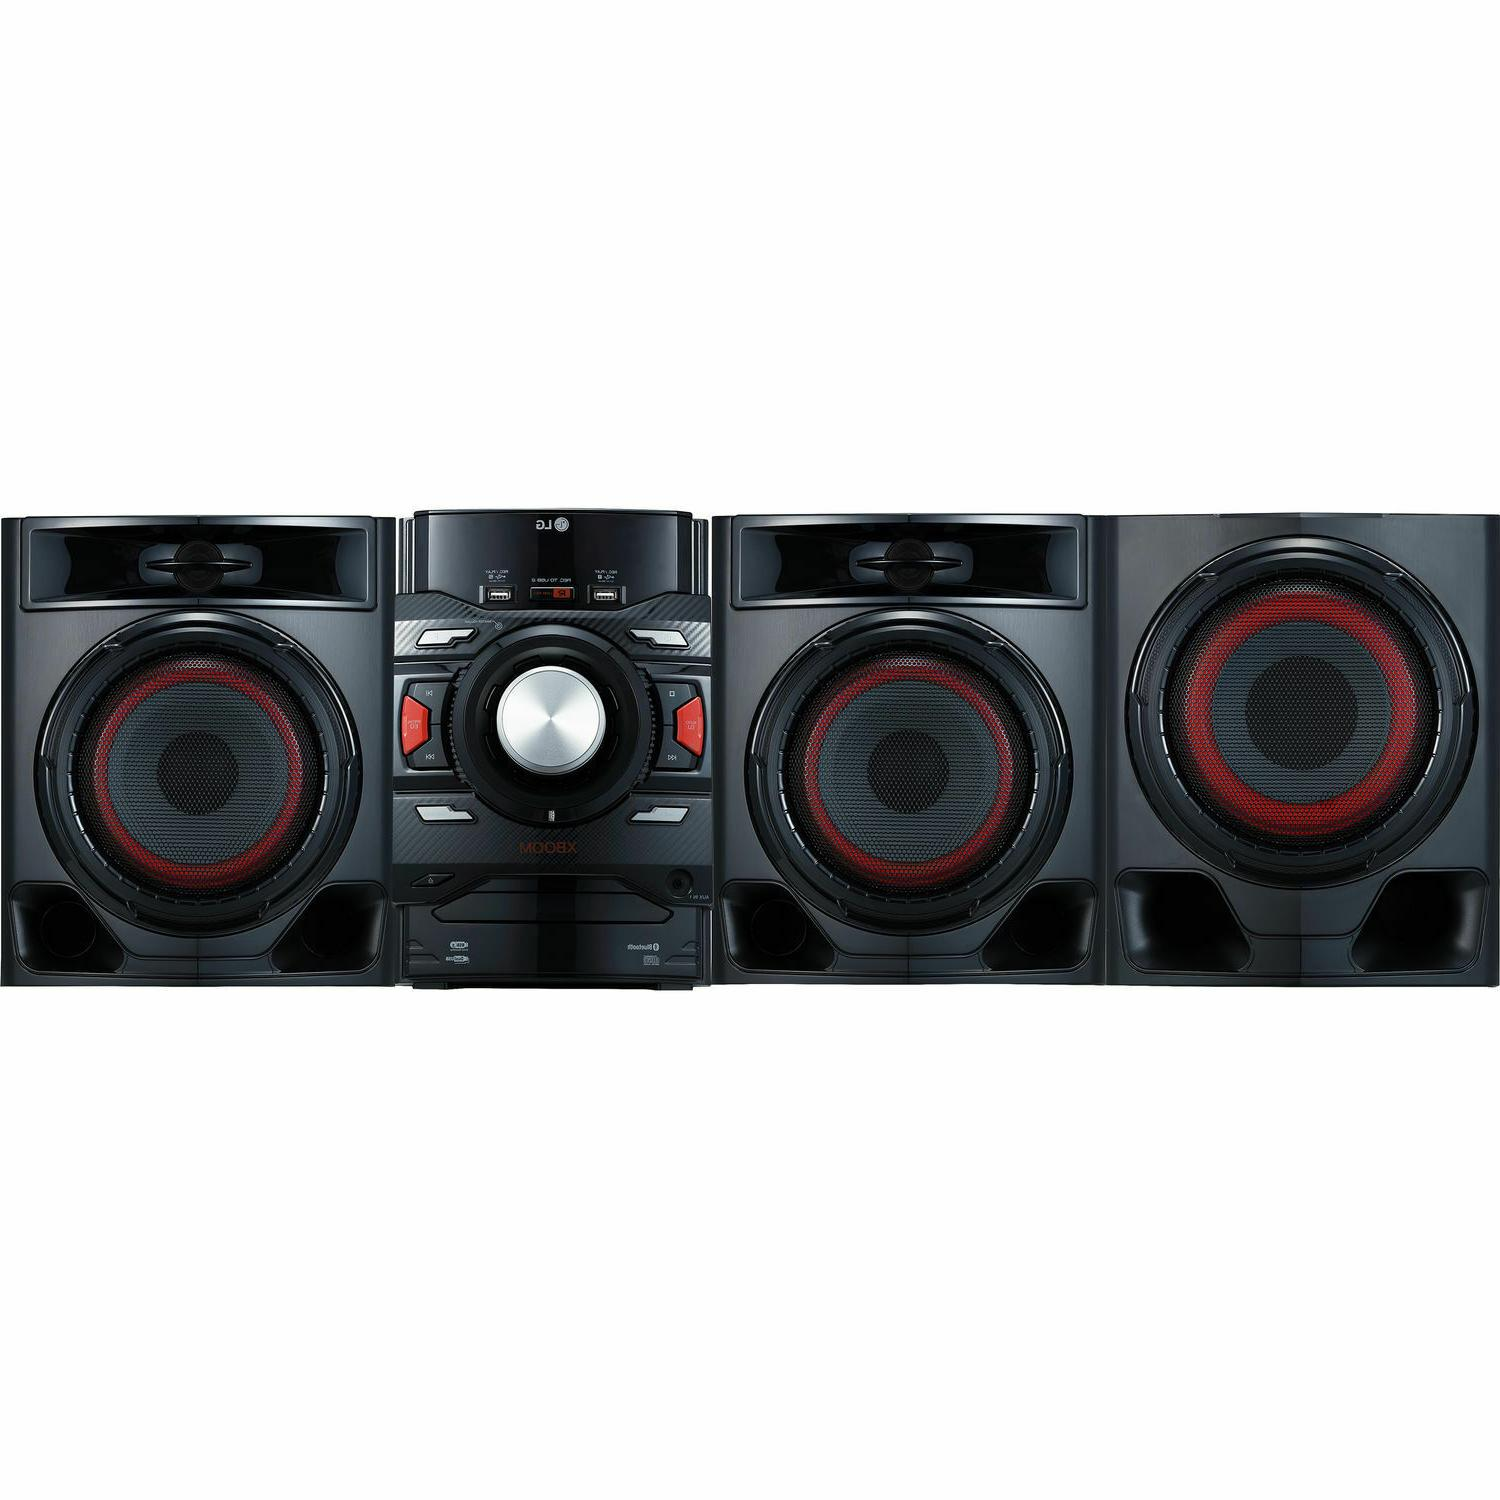 LG 2.1ch Bluetooth Mini Shelf Speaker System with Subwoofer